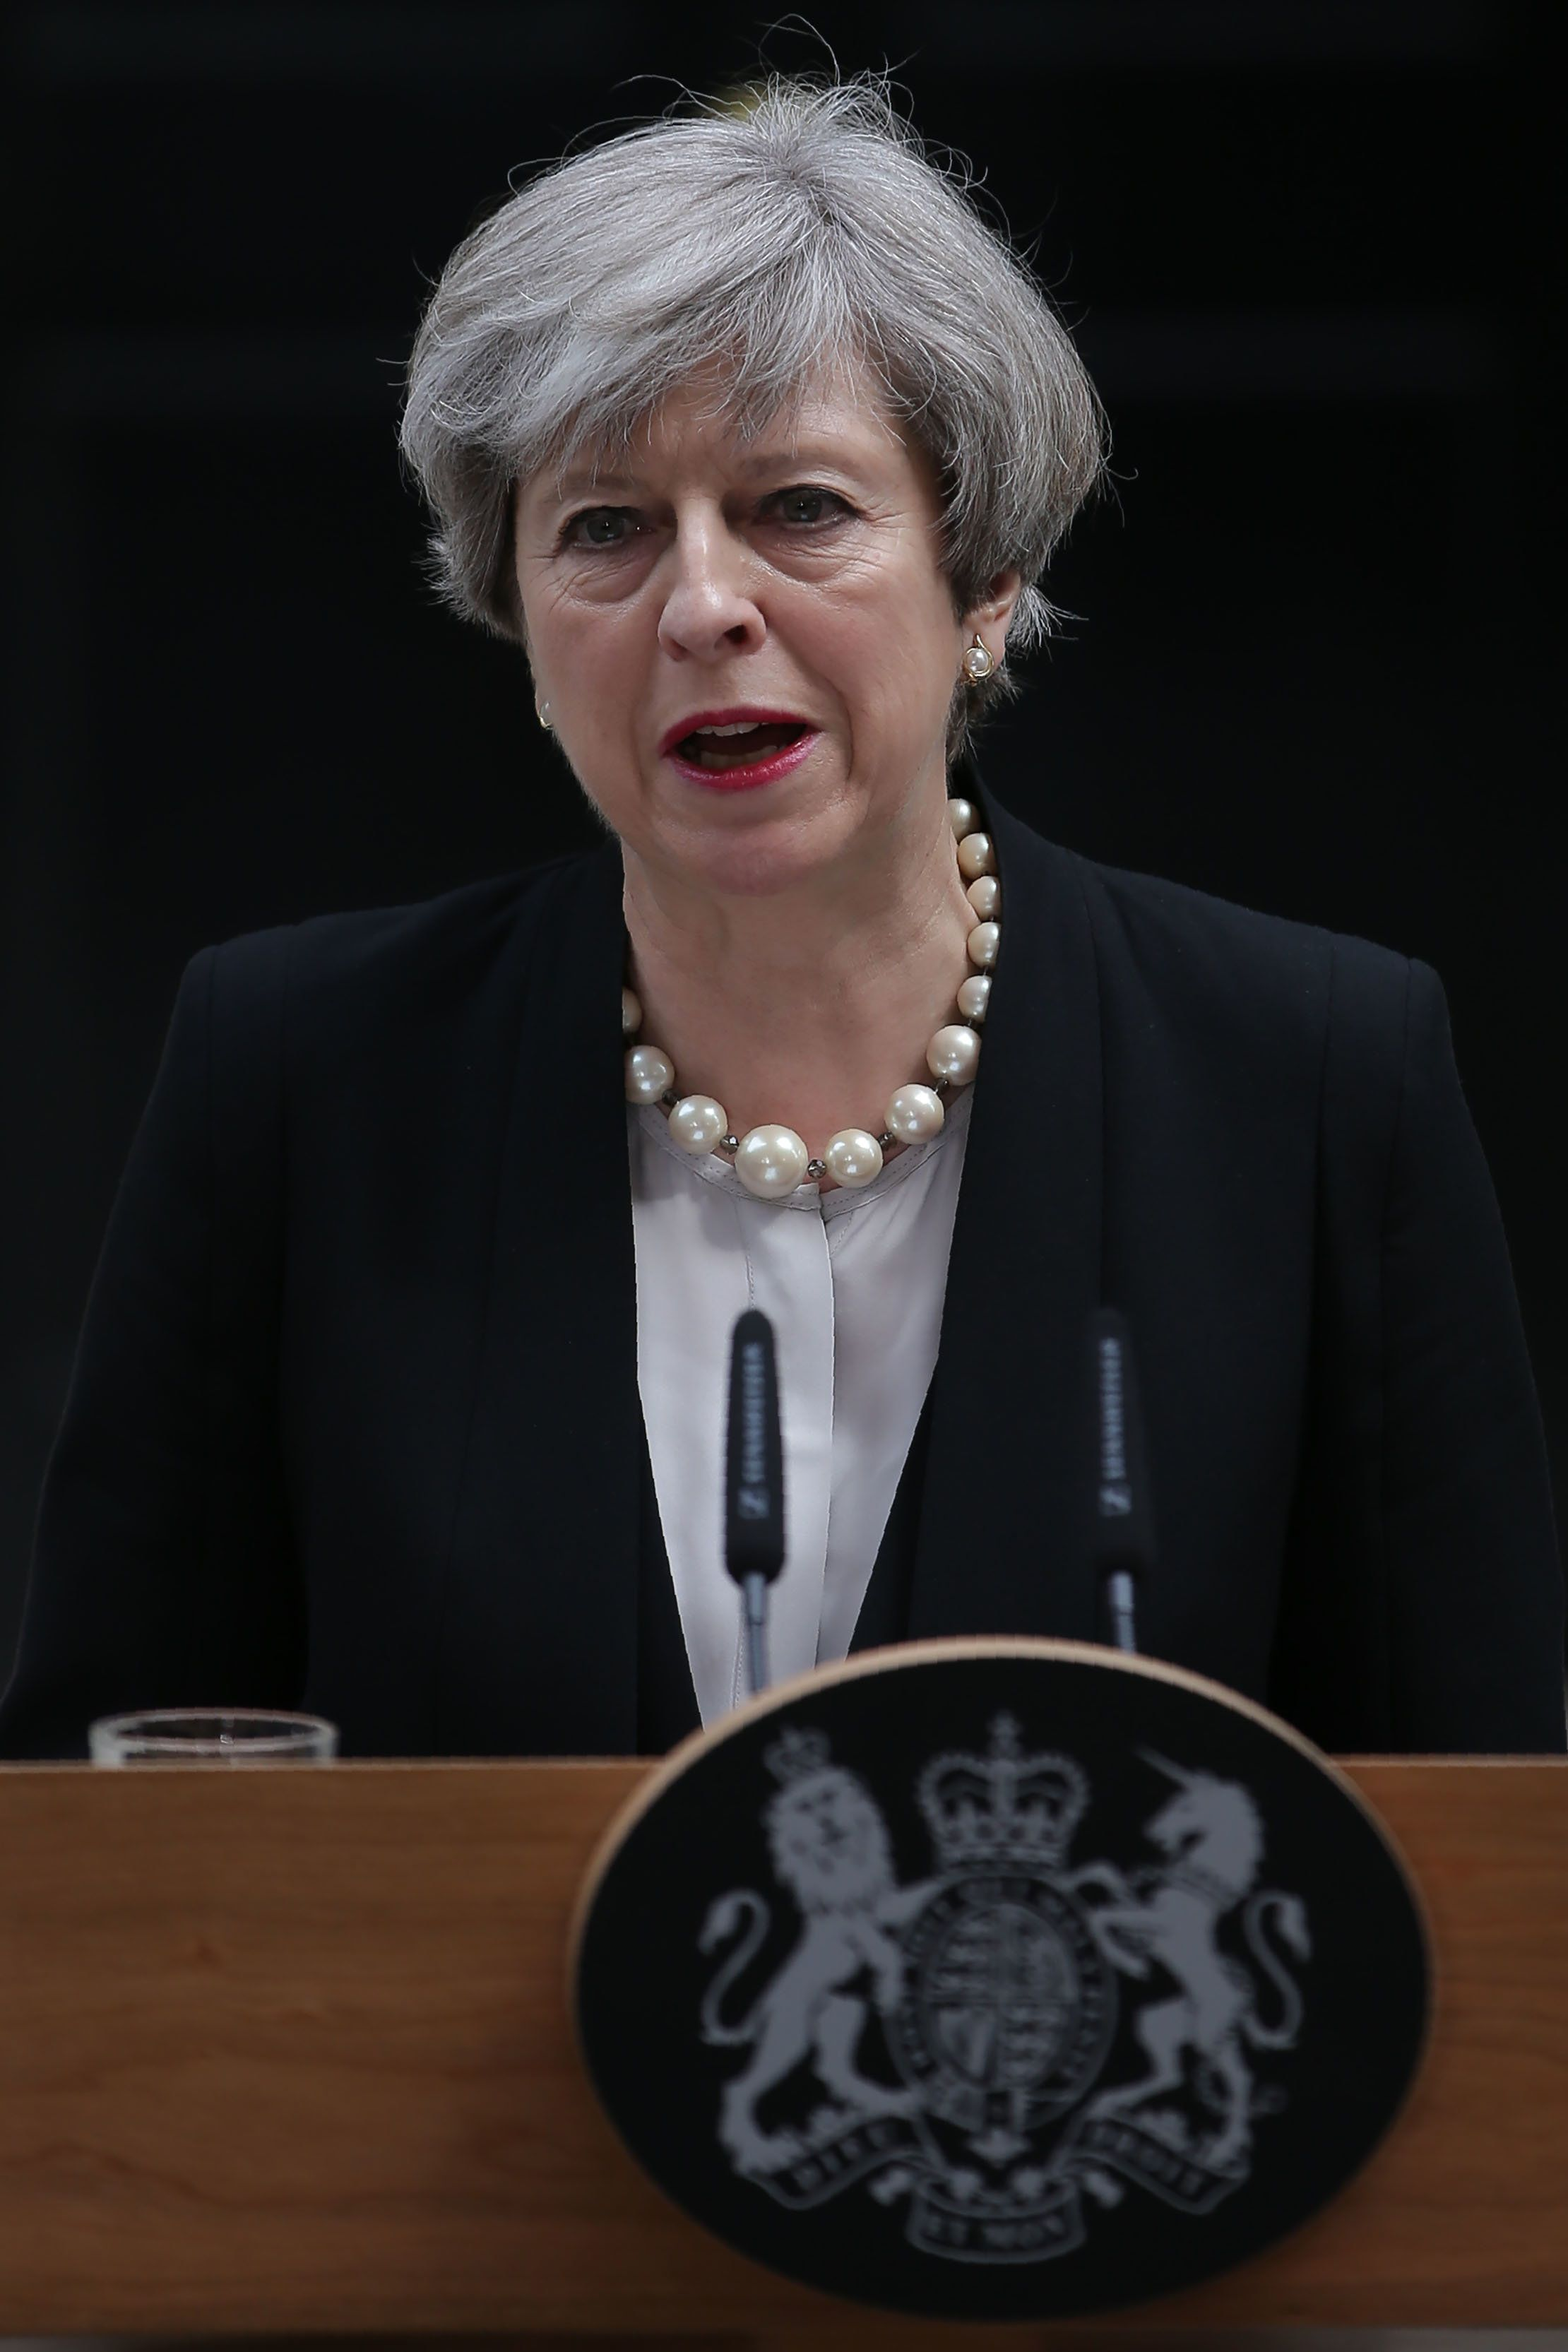 Theresa May Condemns 'Sickening Cowardice' Of Manchester